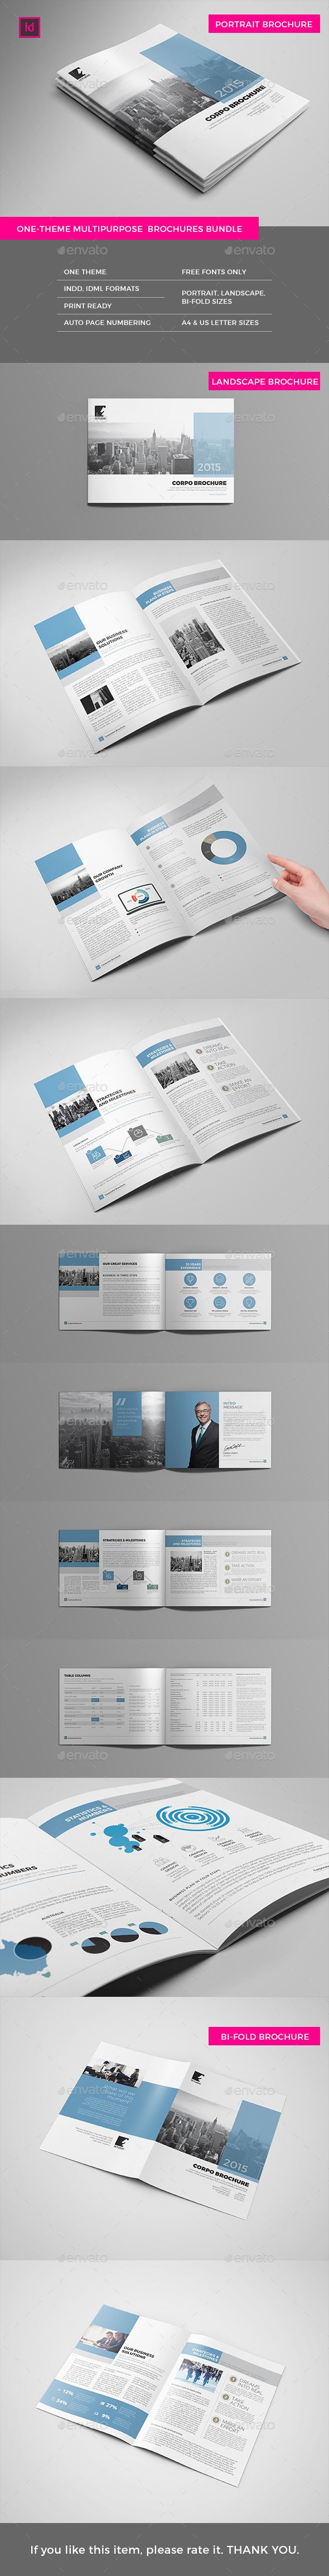 Print Pack - Brochures & Annual Reports Template InDesign INDD. Download here: http://graphicriver.net/item/print-pack-brochures-annual-reports/14790613?ref=ksioks